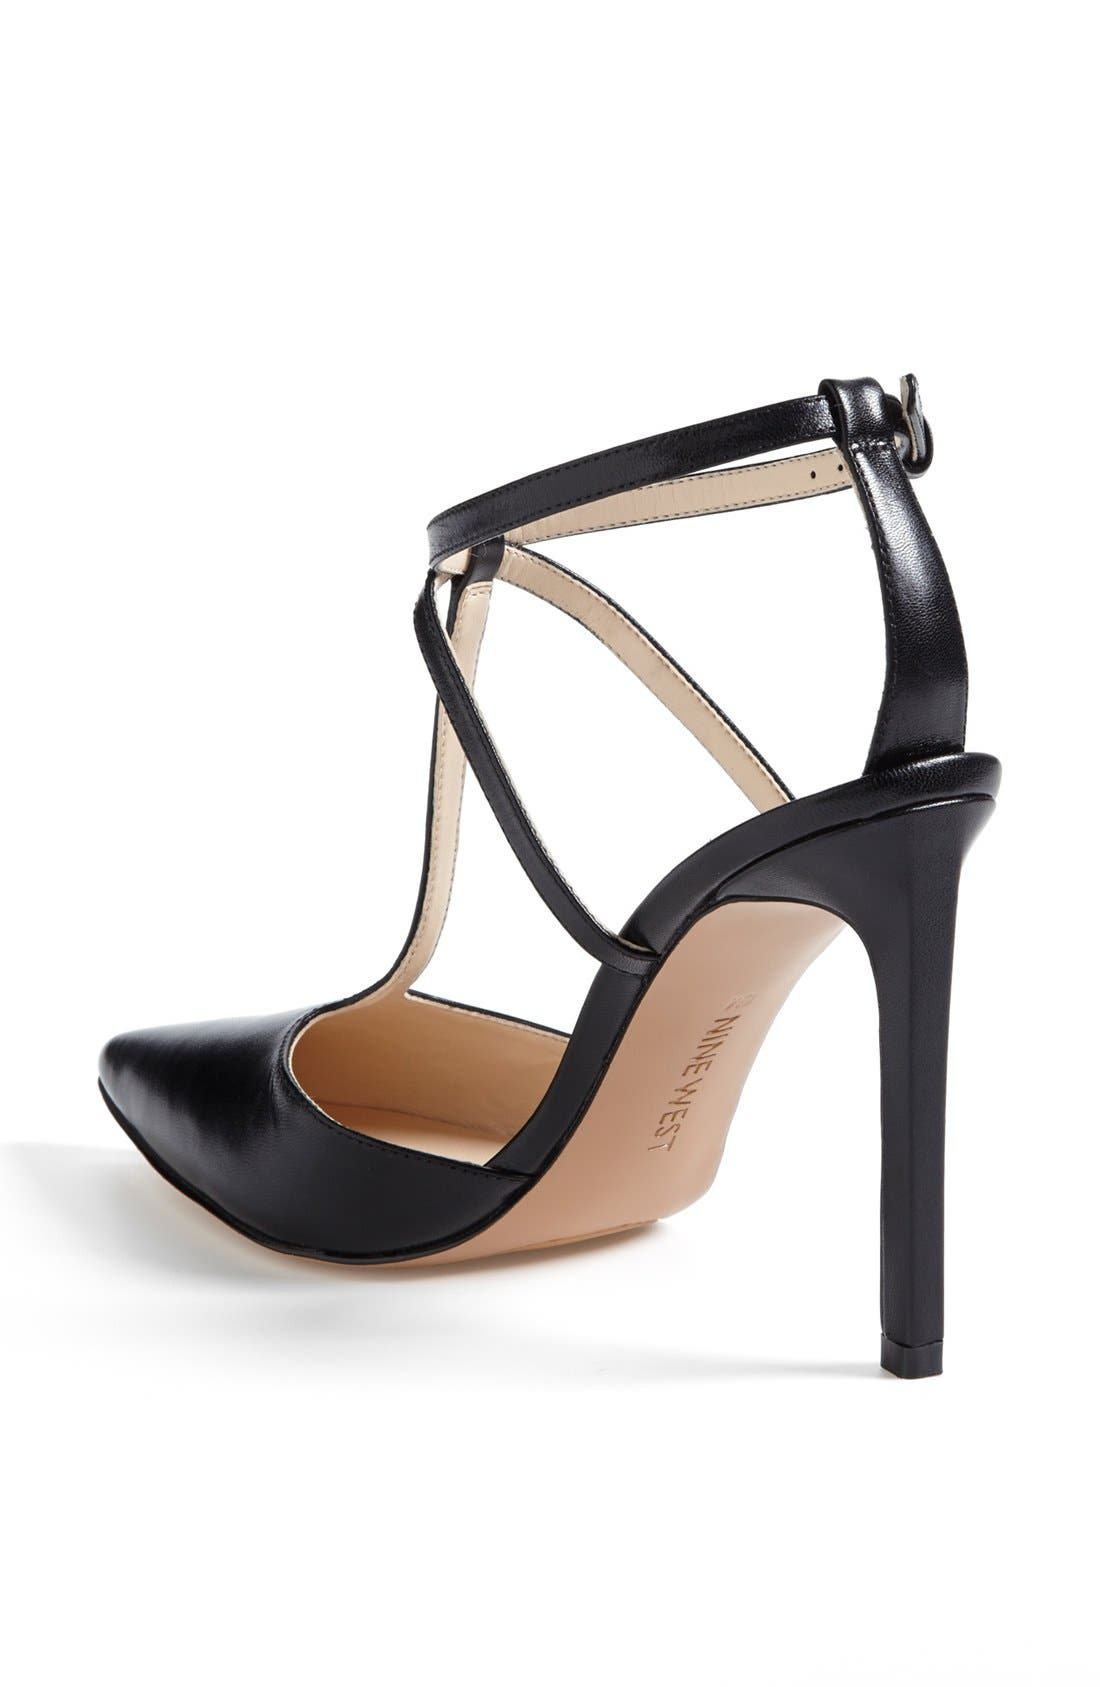 NINE WEST,                             'Tixilated' Pump,                             Alternate thumbnail 2, color,                             001